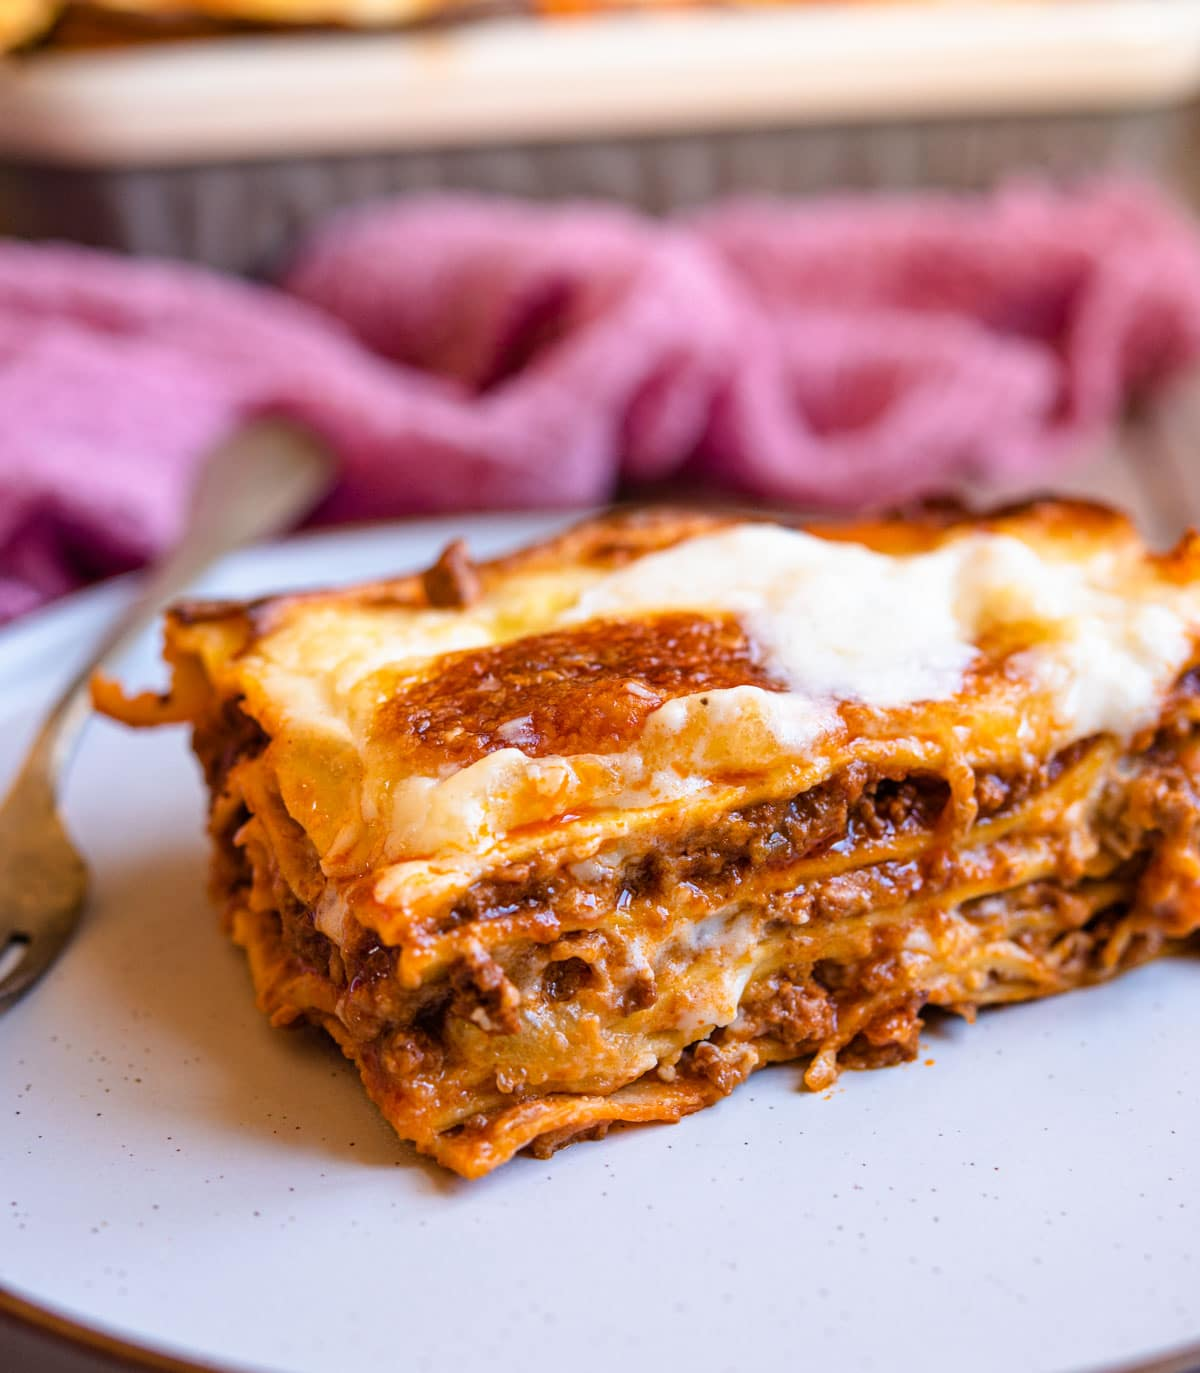 A close up of a slice of lasagne al forno on a plate